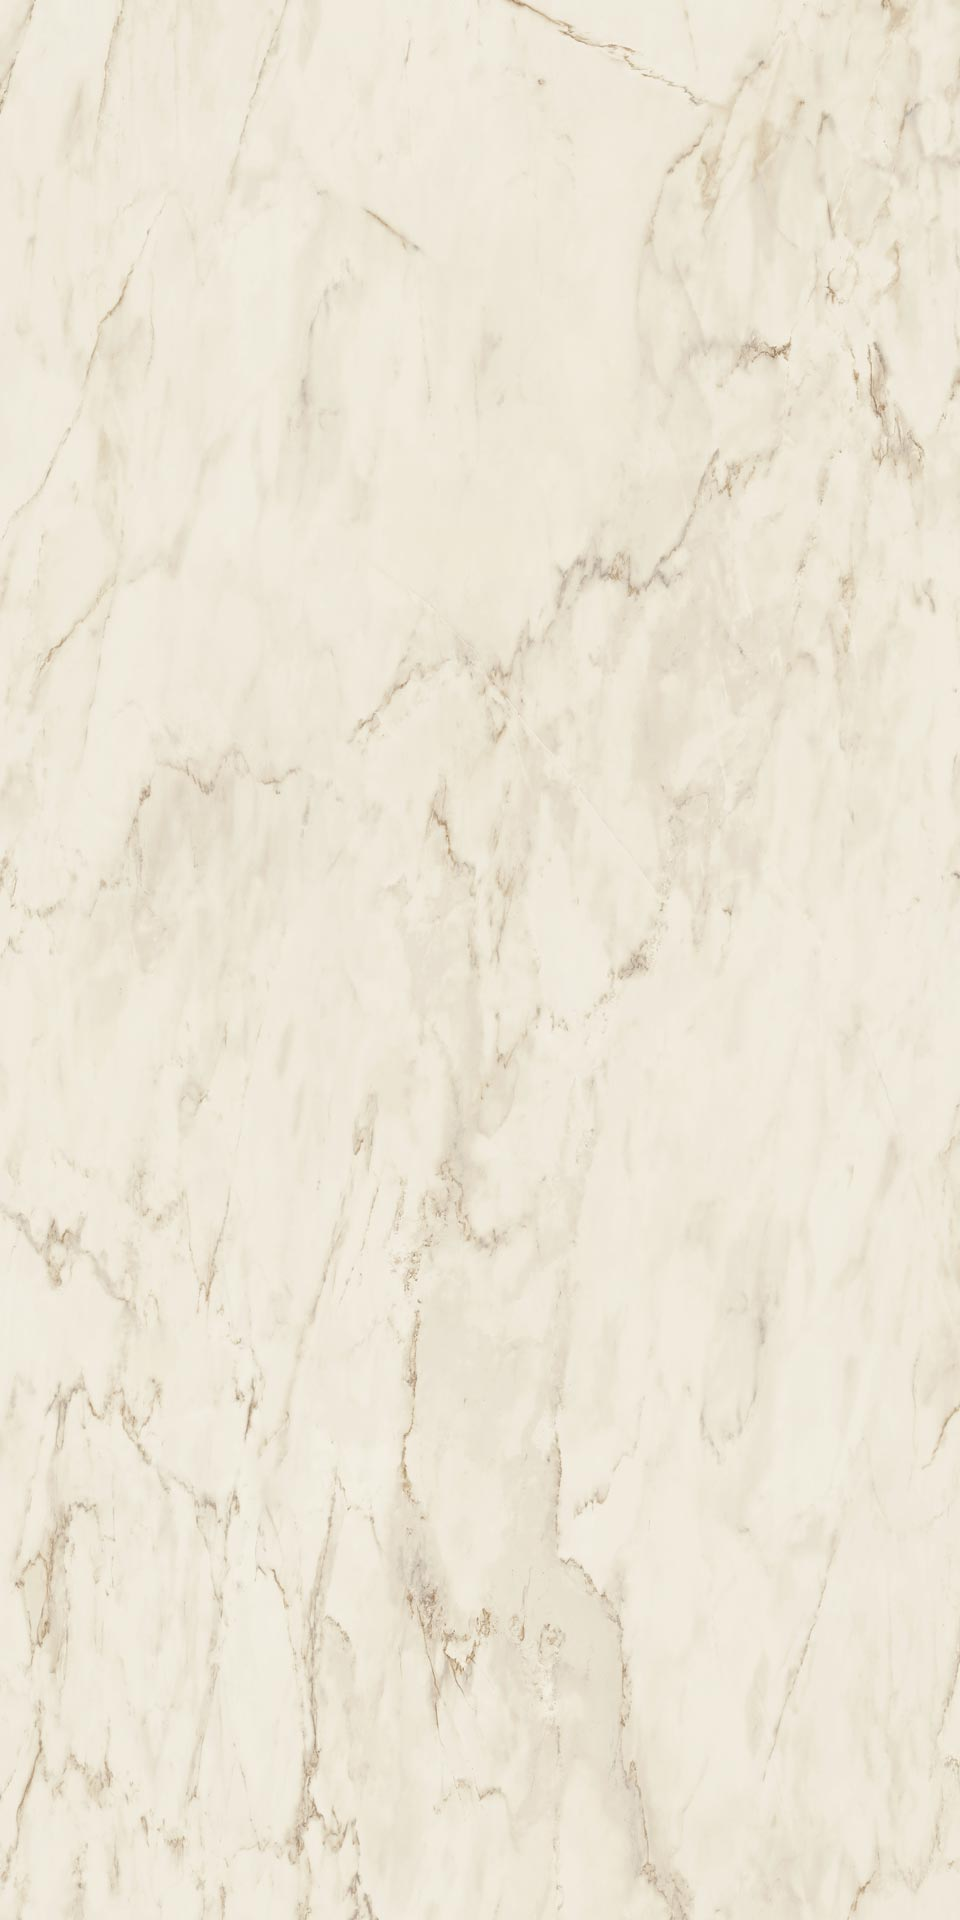 large-slabs-marble-effect-cremo-delicato-atlas-plan